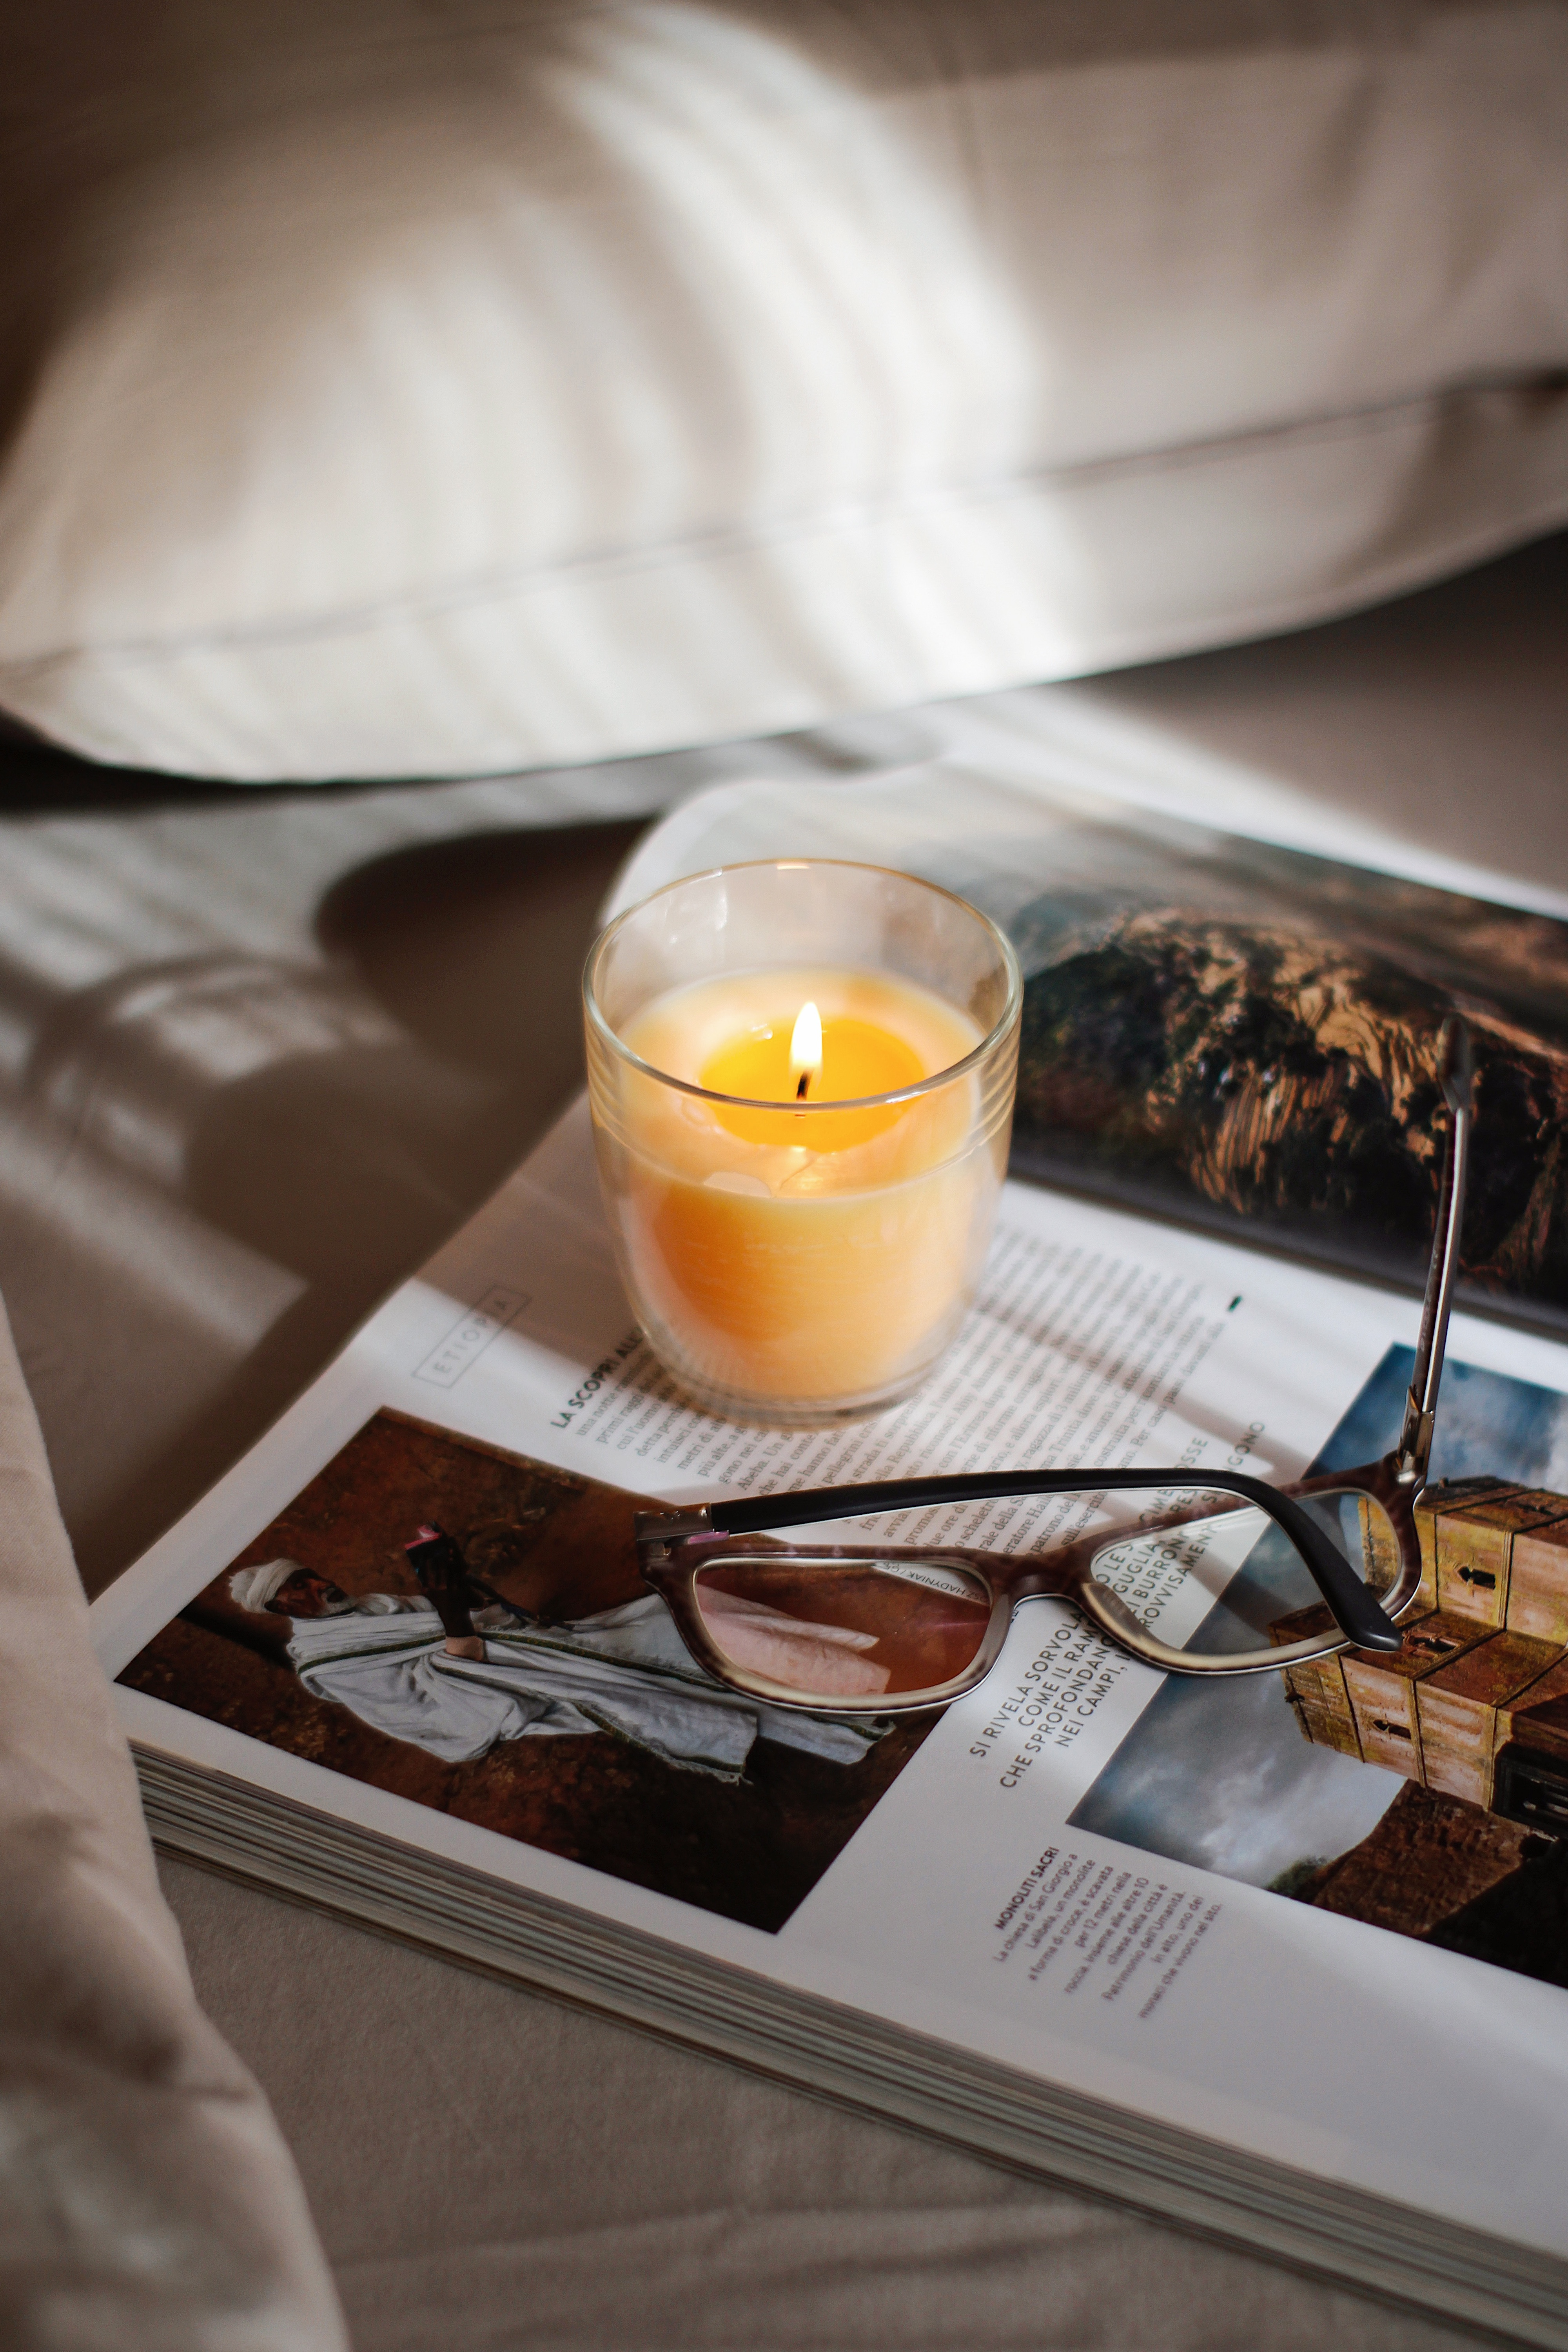 black-framed-eyeglasses-beside-clear-glass-cup-on-white-book-page